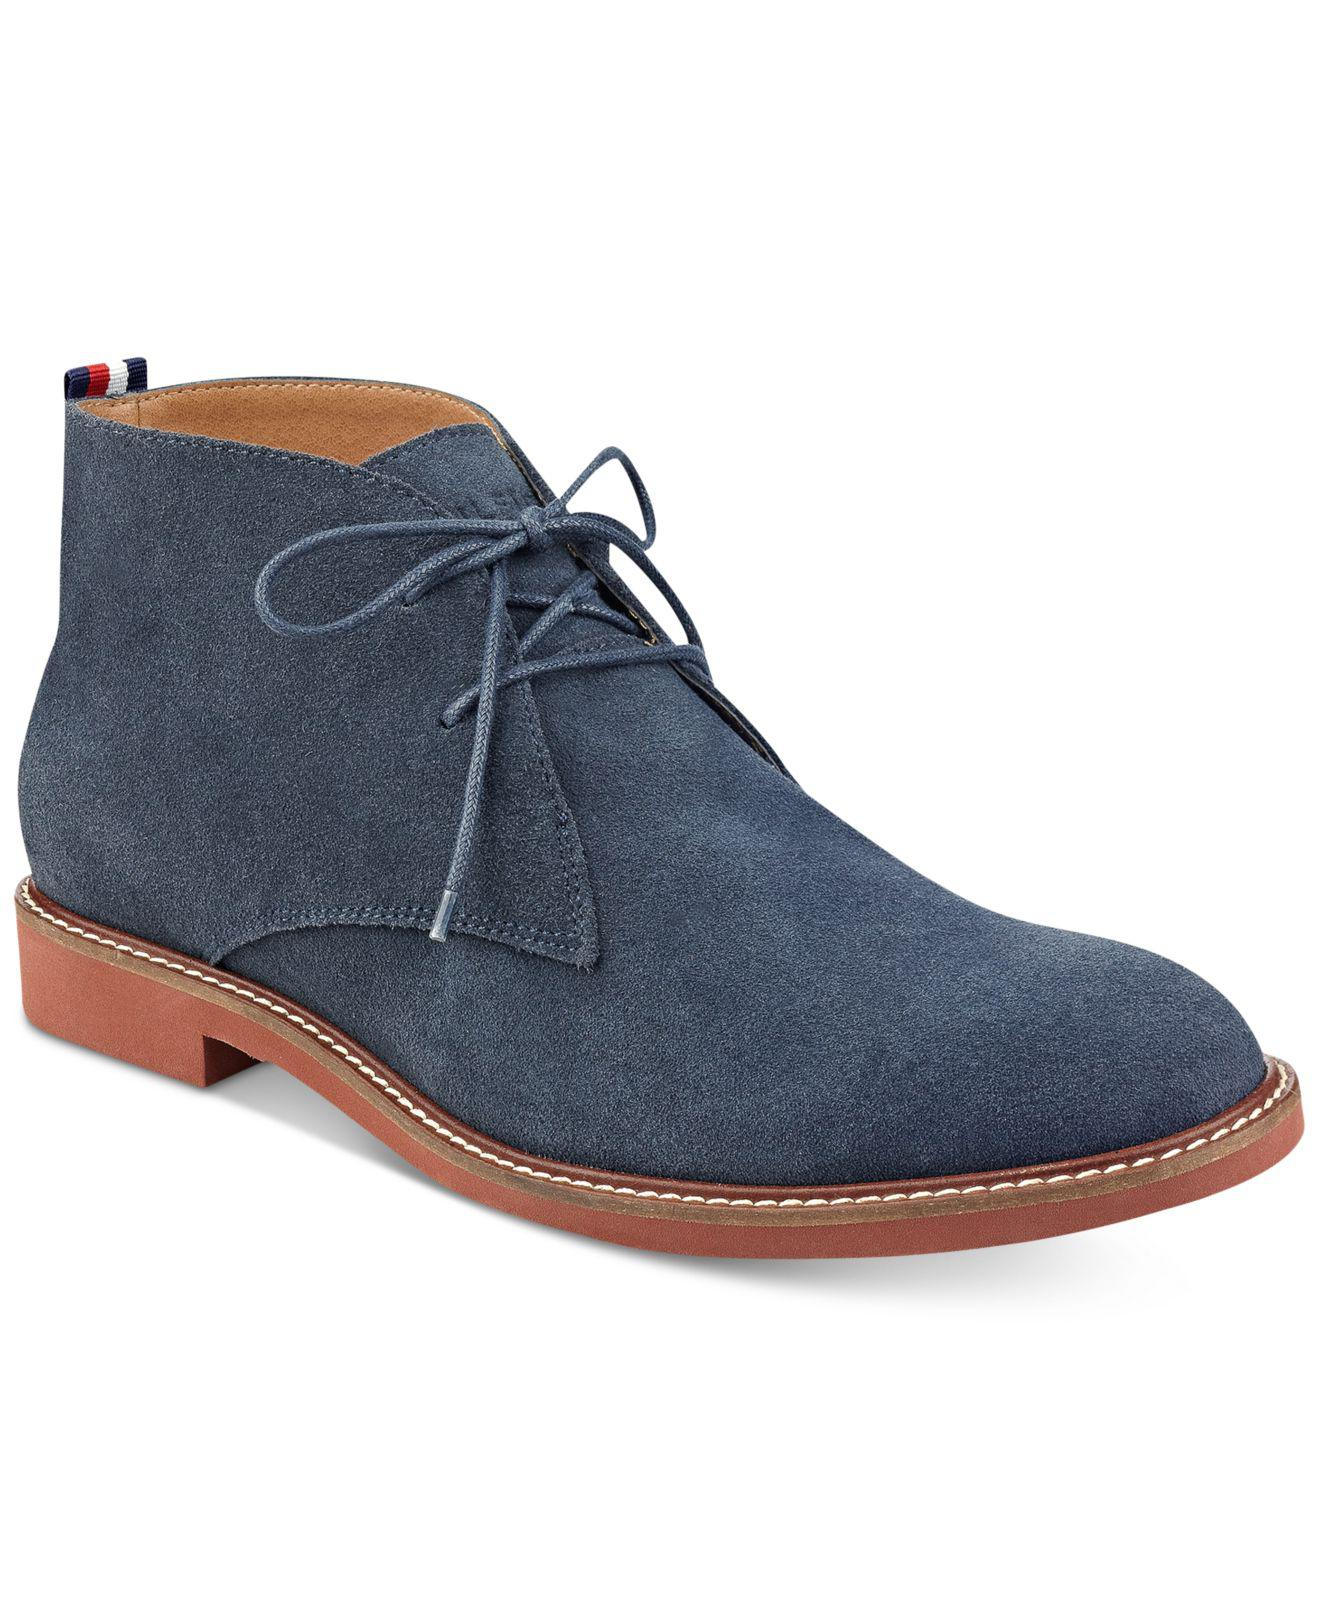 889801121a0d Lyst - Tommy Hilfiger Men s Gervis Chukka Boots in Blue for Men